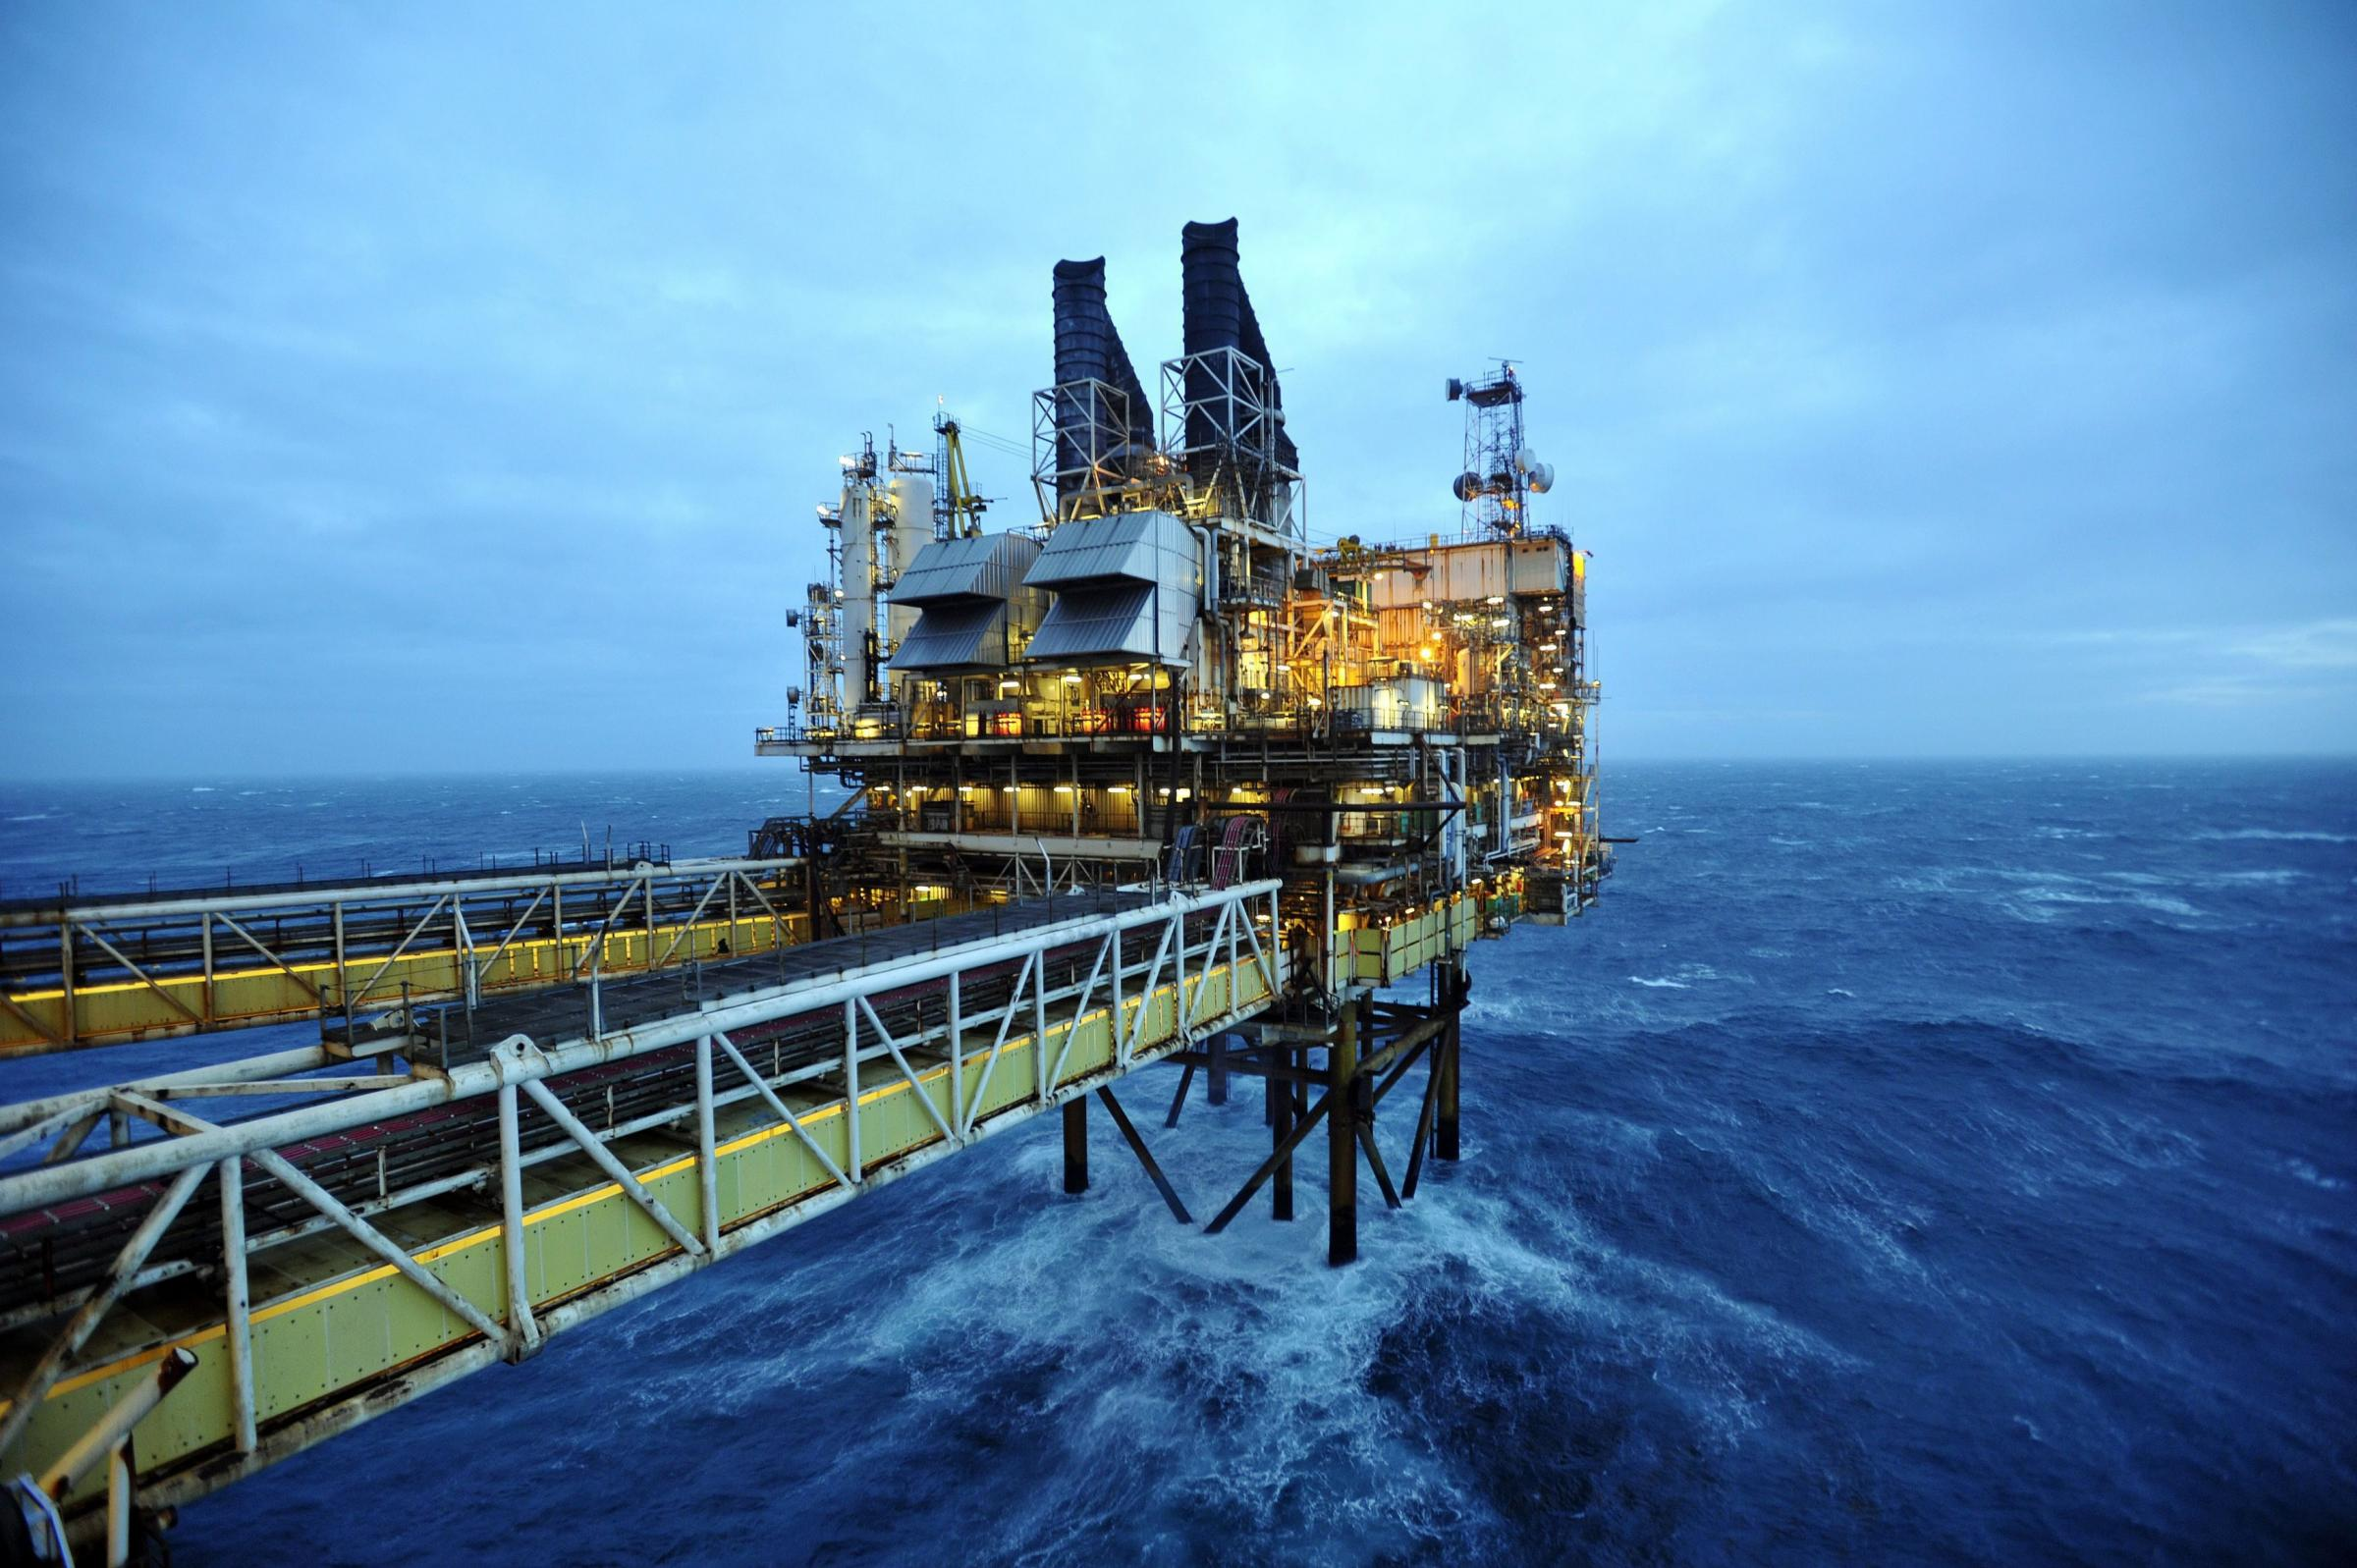 Over 60 workers evacuated from North Sea oil platform after power failure